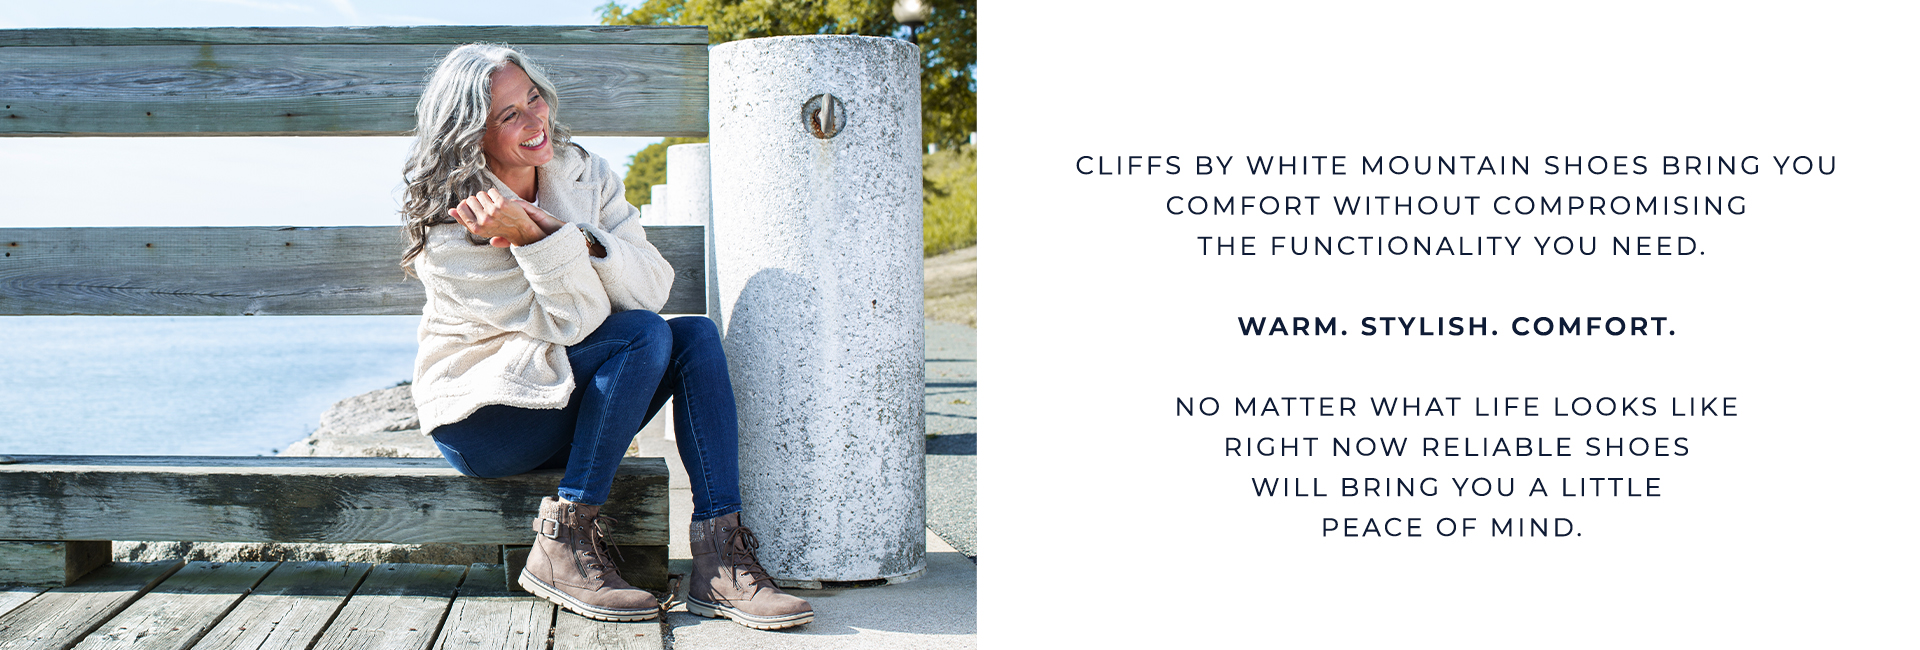 CLIFFS by White Mountain Shoes brings comfort without compromising the functionality you need. Warm. Stylish. Comfort. No matter what life looks like right now reliable shoes will bring you a little peace of mind.